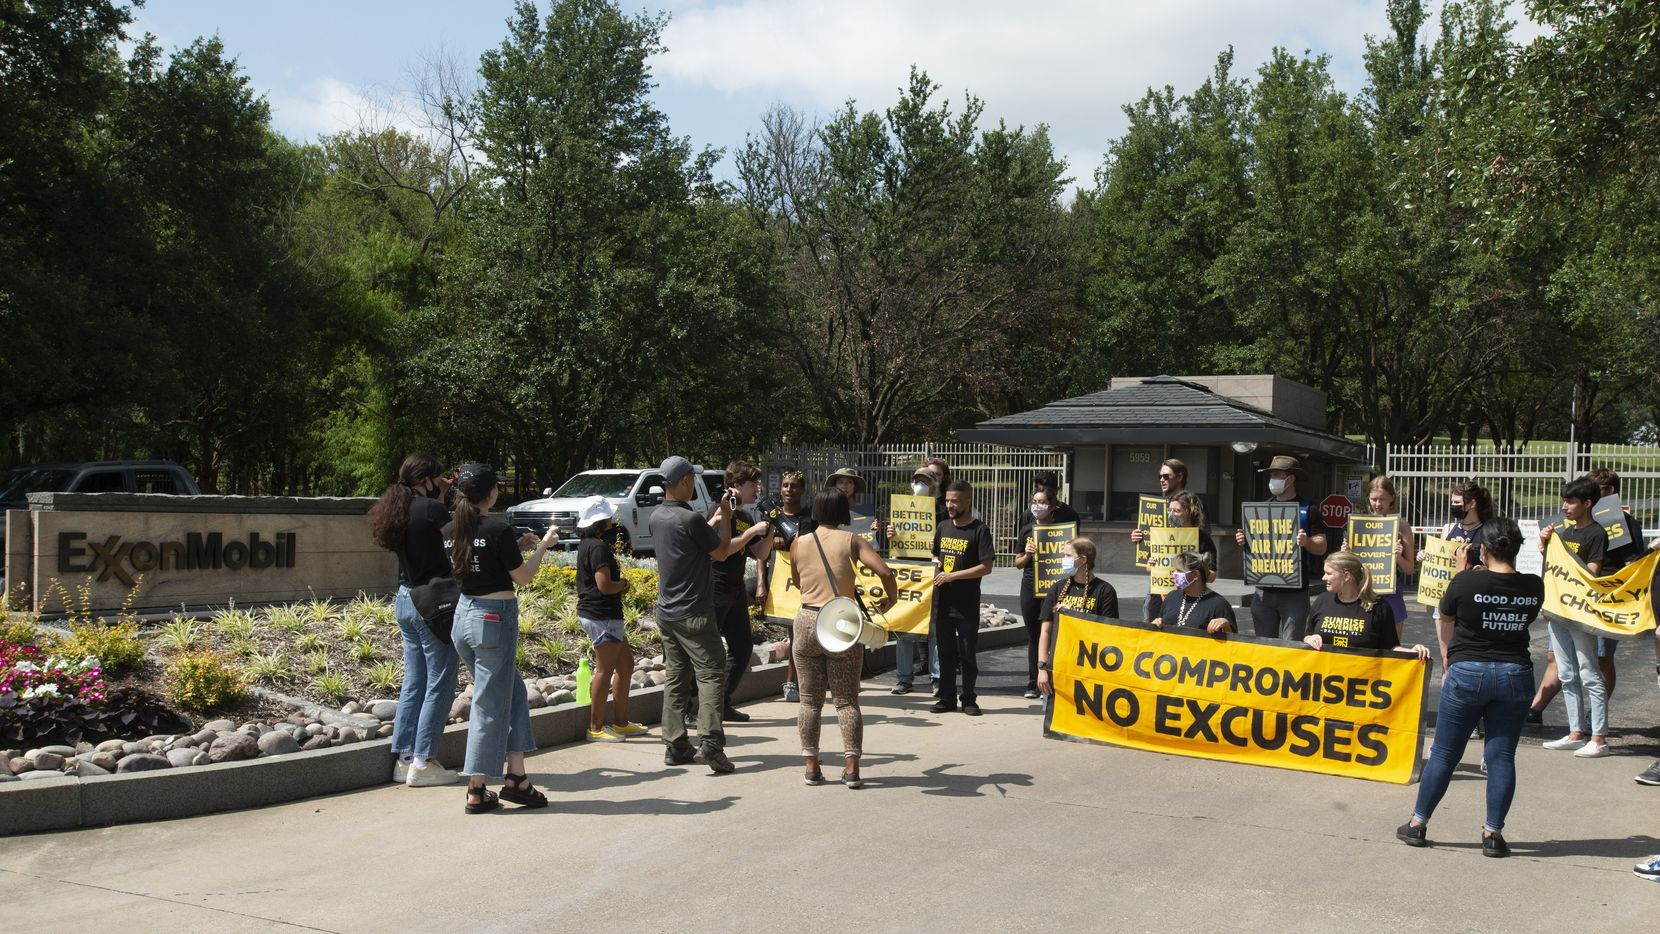 Members of the Sunrise Movement, a youth group formed for action on climate change, protested outside the front gate of ExxonMobil headquarters in Irving on Thursday, July 15, 2021.